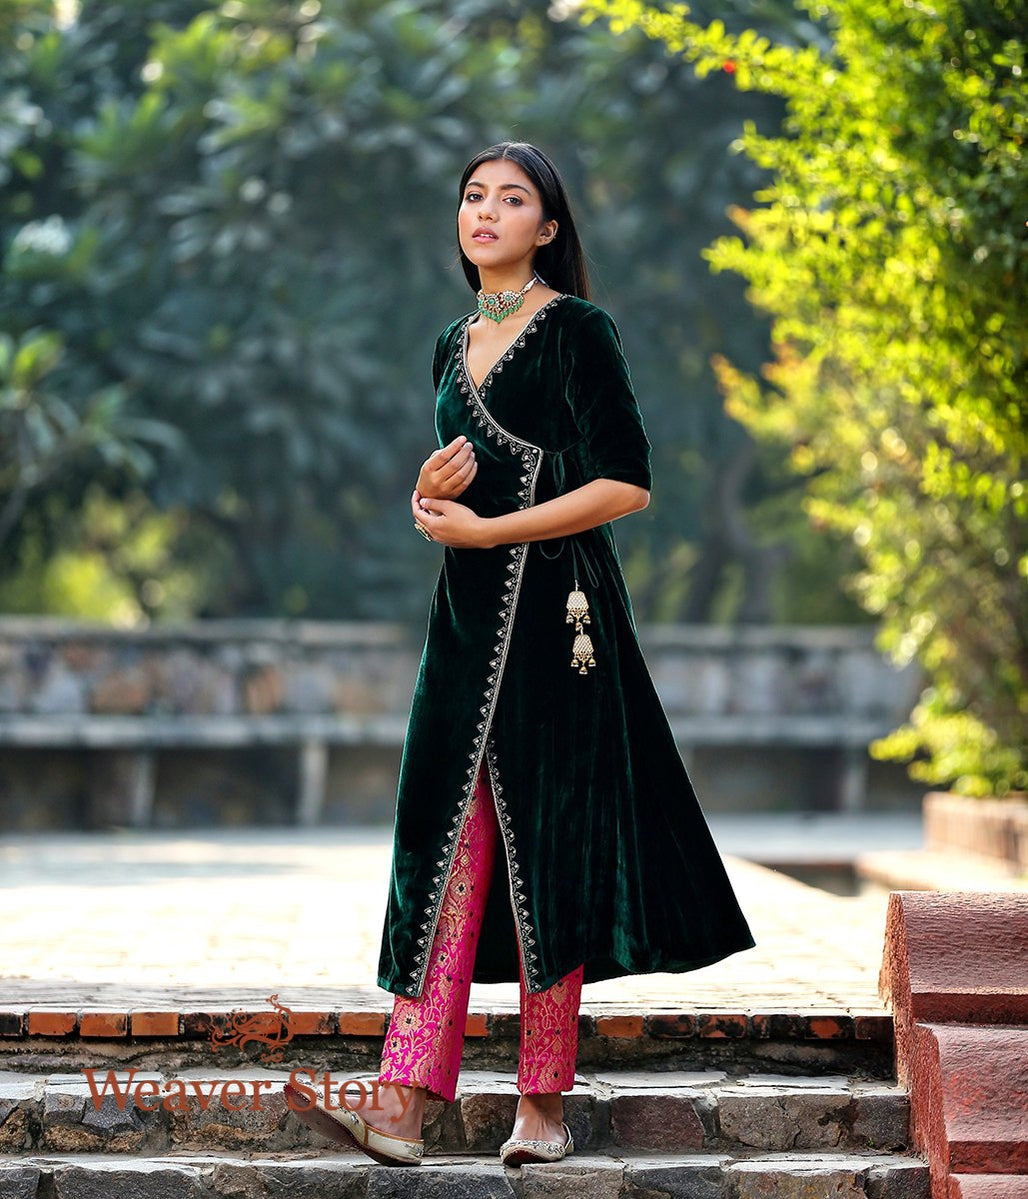 Green Silk Velvet Kurta with Hand Embroidered Zardozi Detailing and Pink Brocade Pants